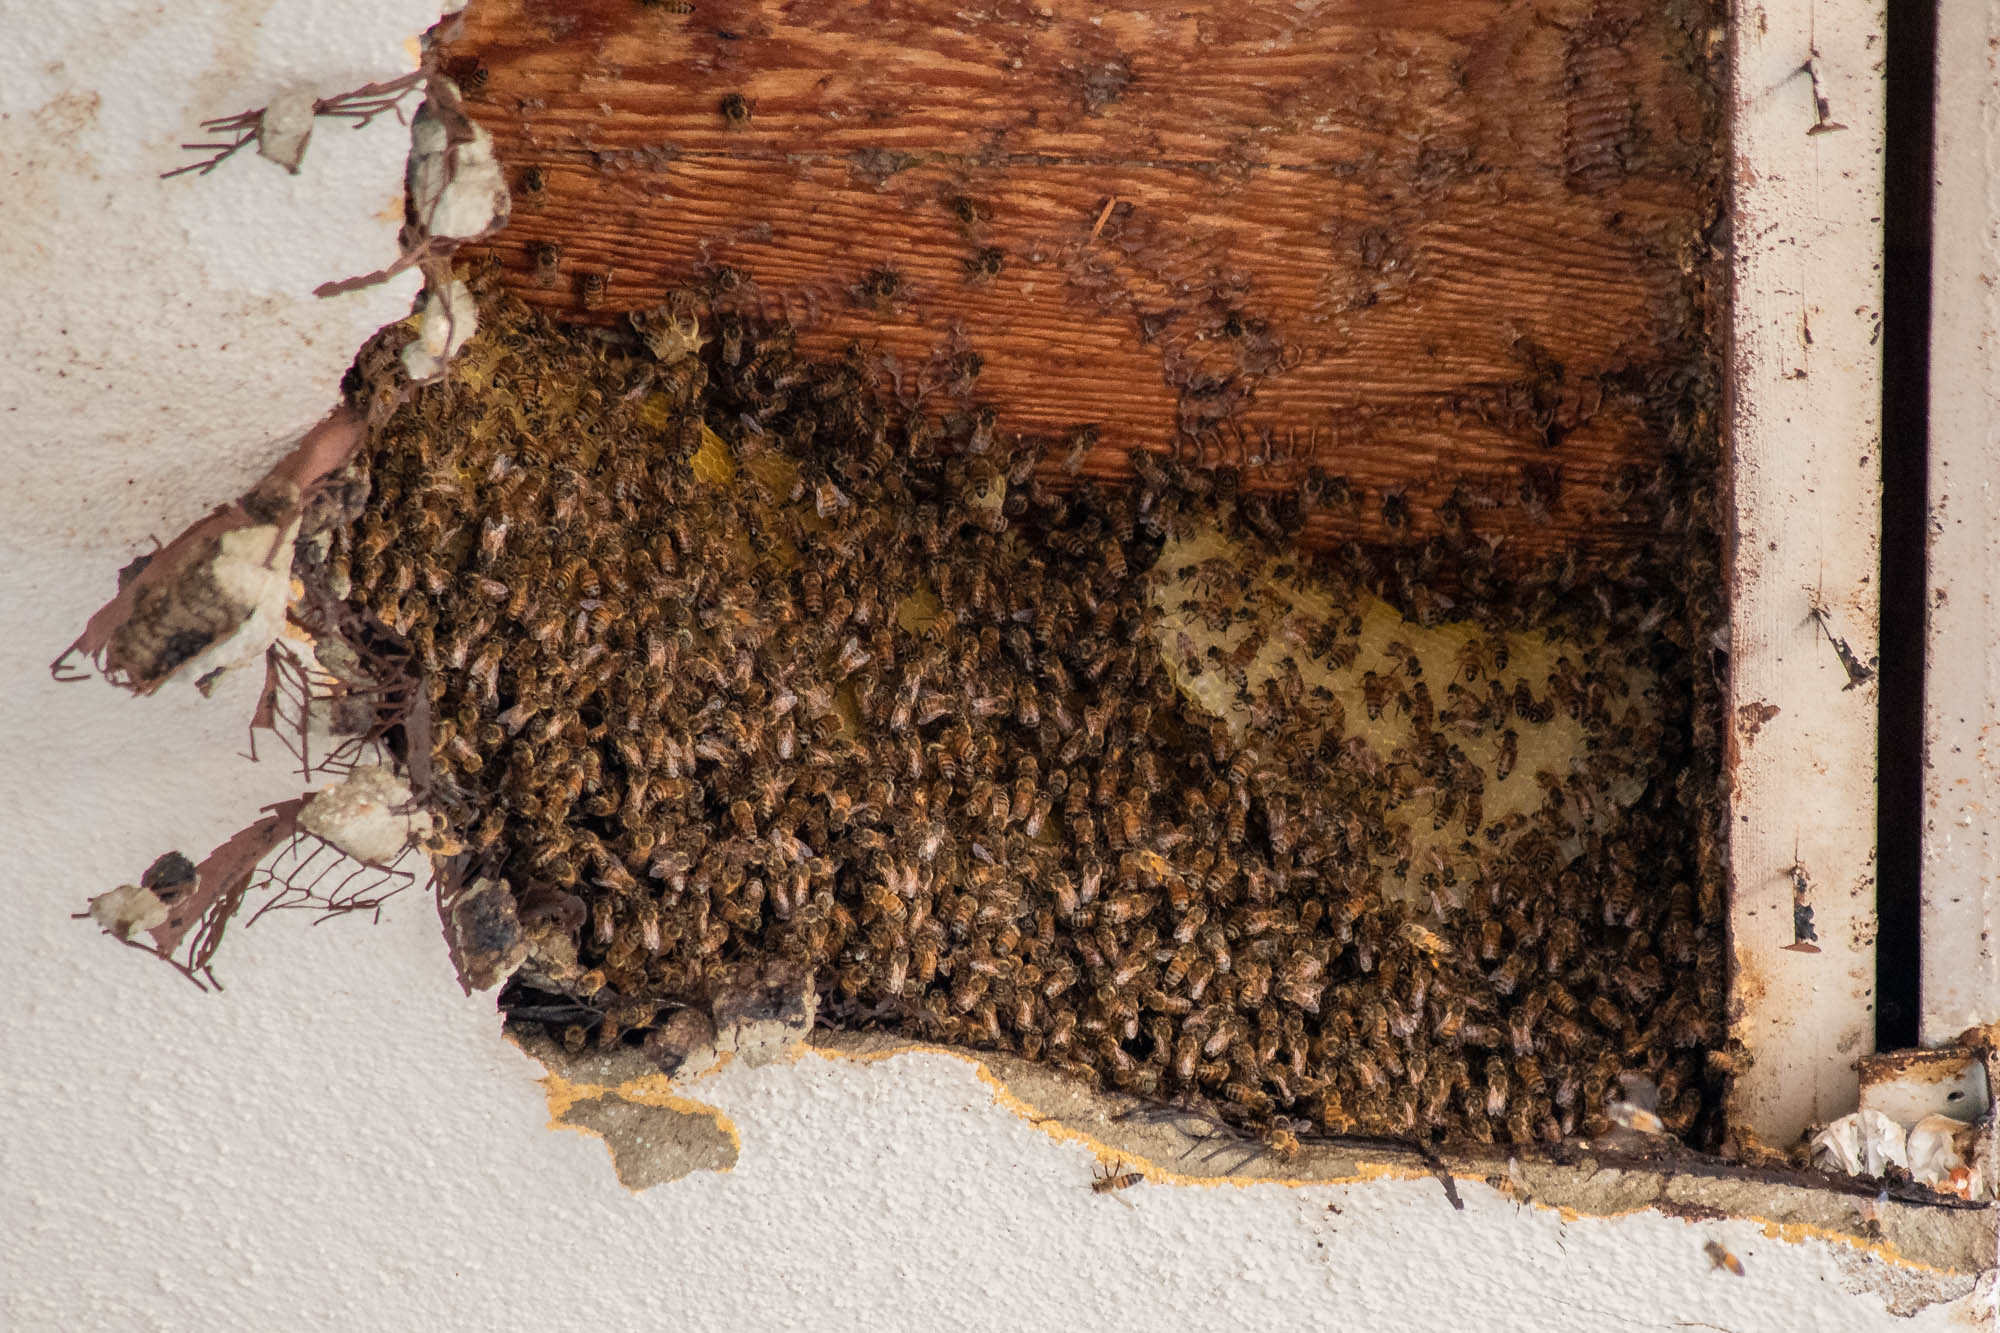 Bees make campus home